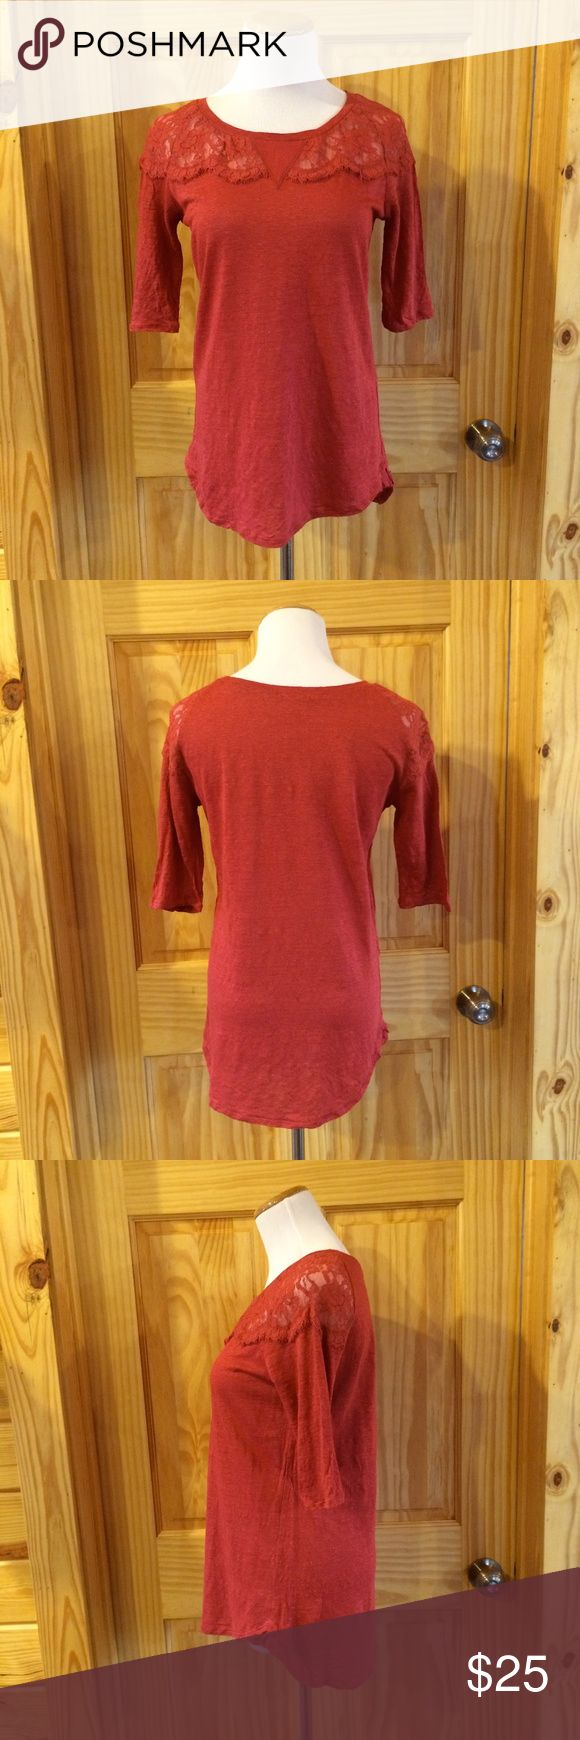 """Anthropologie bordeaux Coral Red Linen Lace Top Has slight burnout effect on cloth. Lace around collar, unlined beneath. In excellent condition. Bust: 35"""" Waist: 34"""" Shoulder to Hem: 26"""" *F12 Anthropologie Tops Tees - Short Sleeve"""